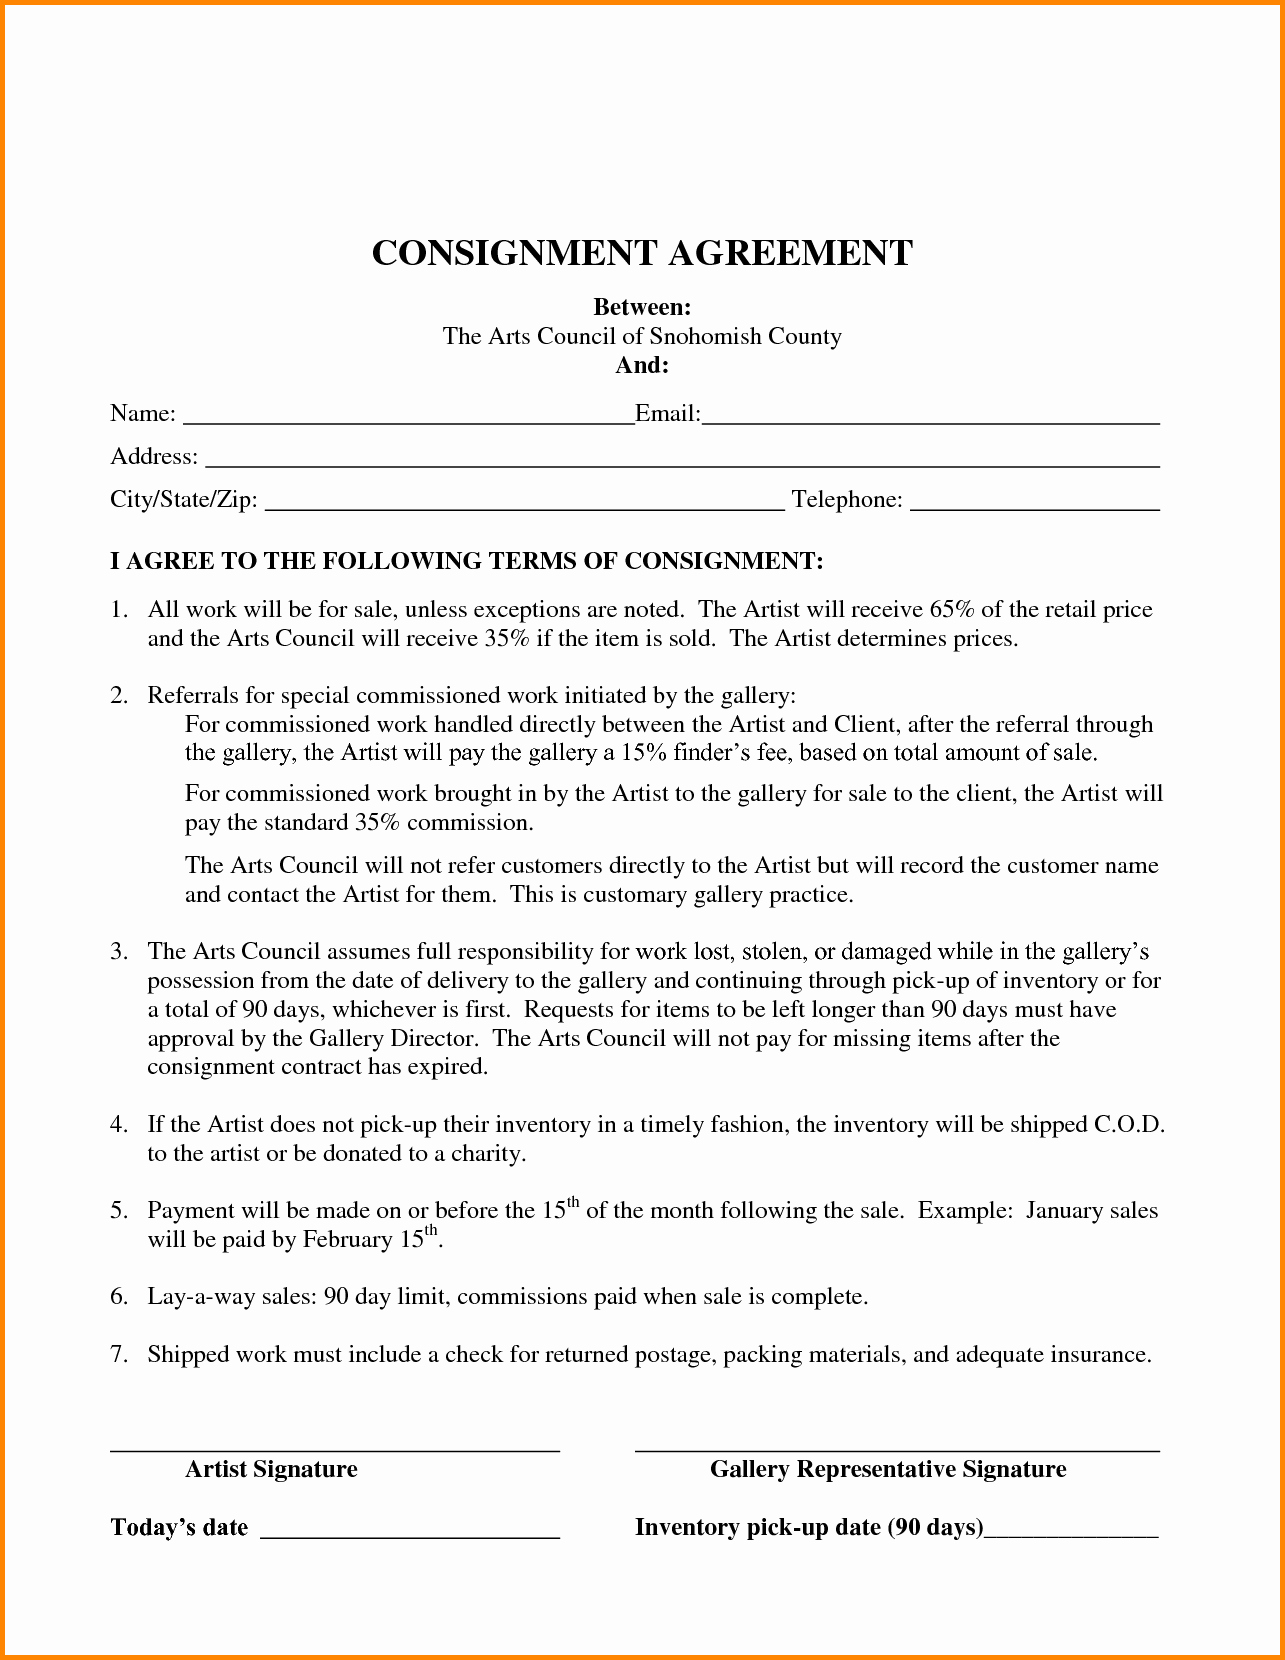 Consignment Agreement Template Free Fresh Consignment Inventory Agreement Template